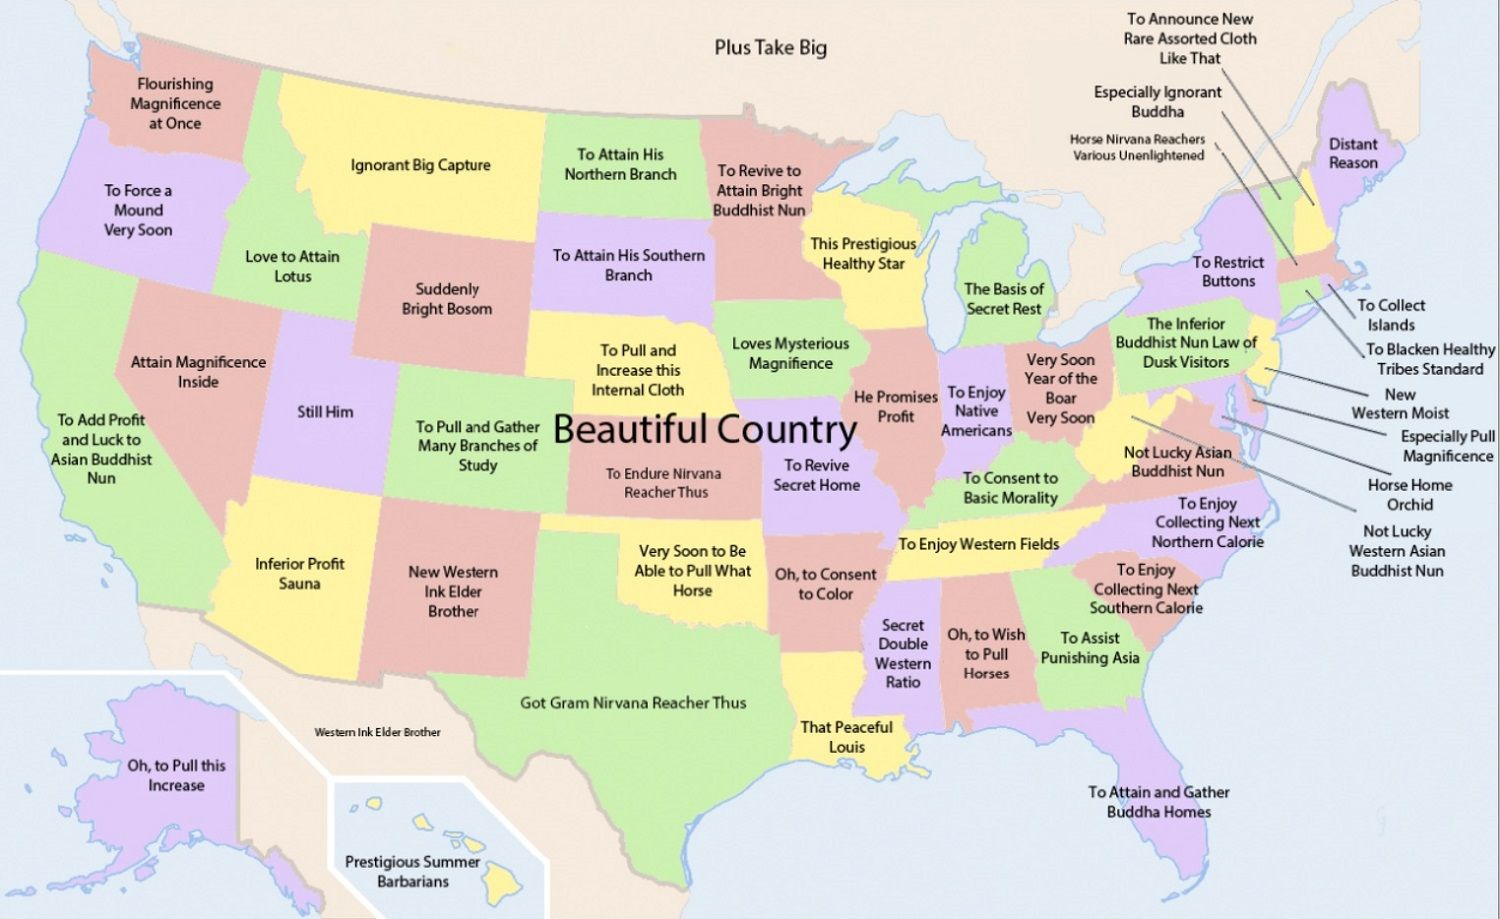 Chinese translation of each US state